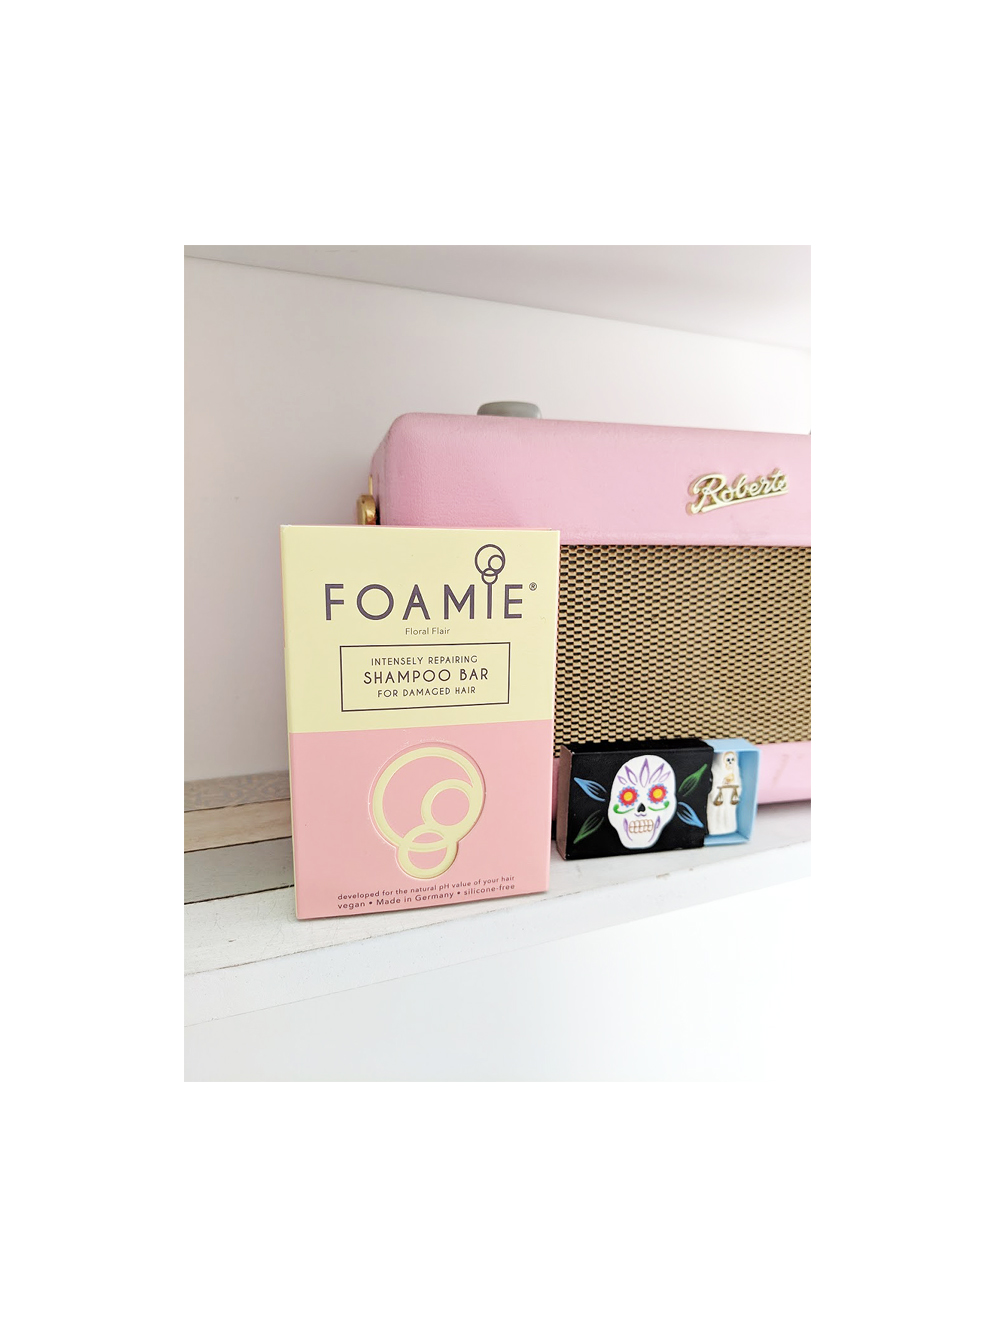 Shop the Foamie product range  here